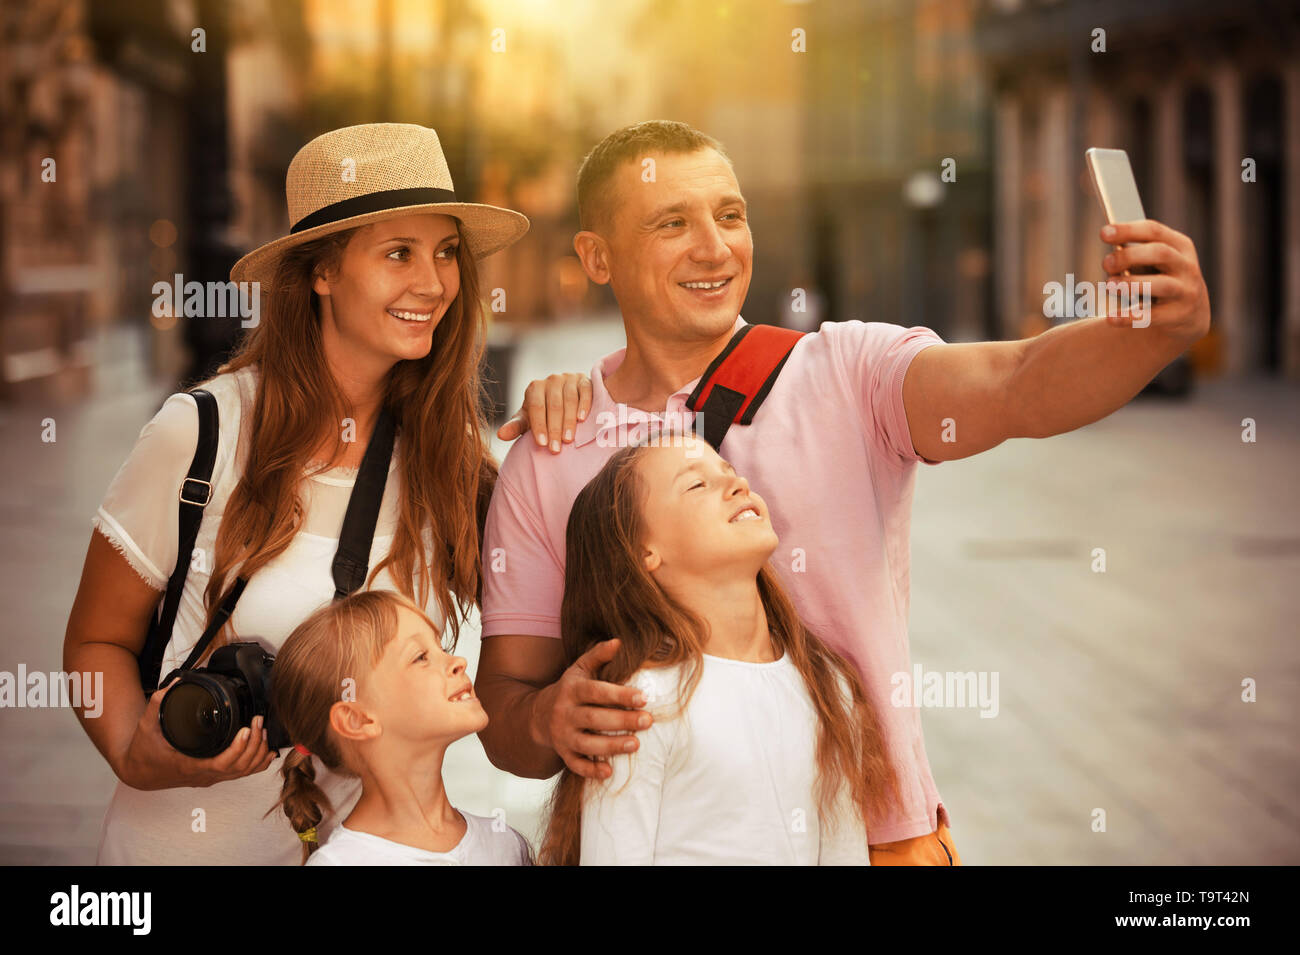 Joyful parents with two kids taking selfie near city sights - Stock Image